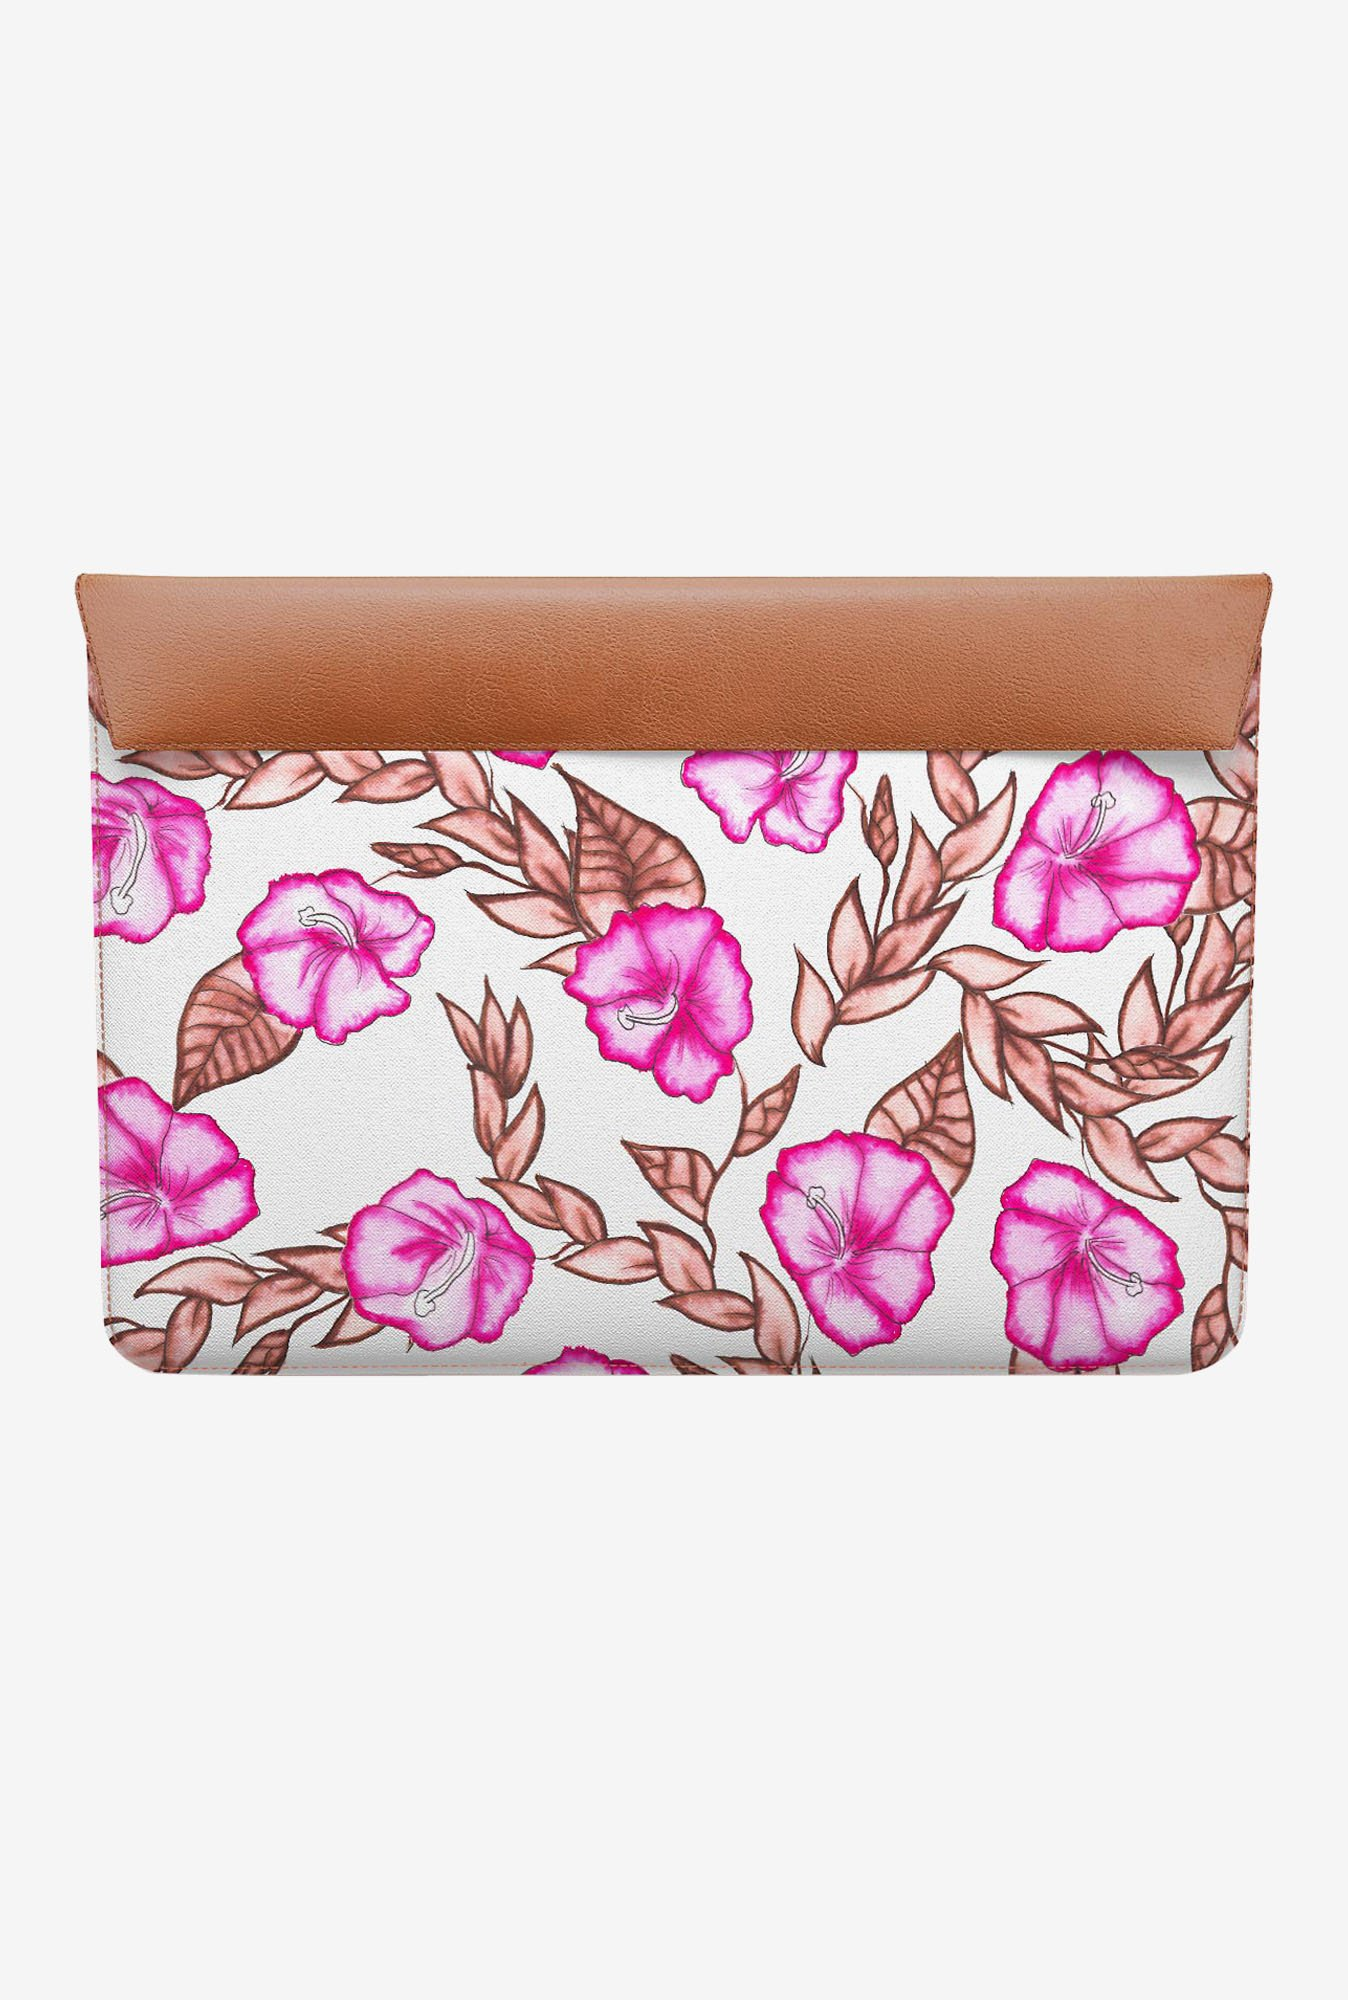 DailyObjects Pink Floral MacBook Air 13 Envelope Sleeve